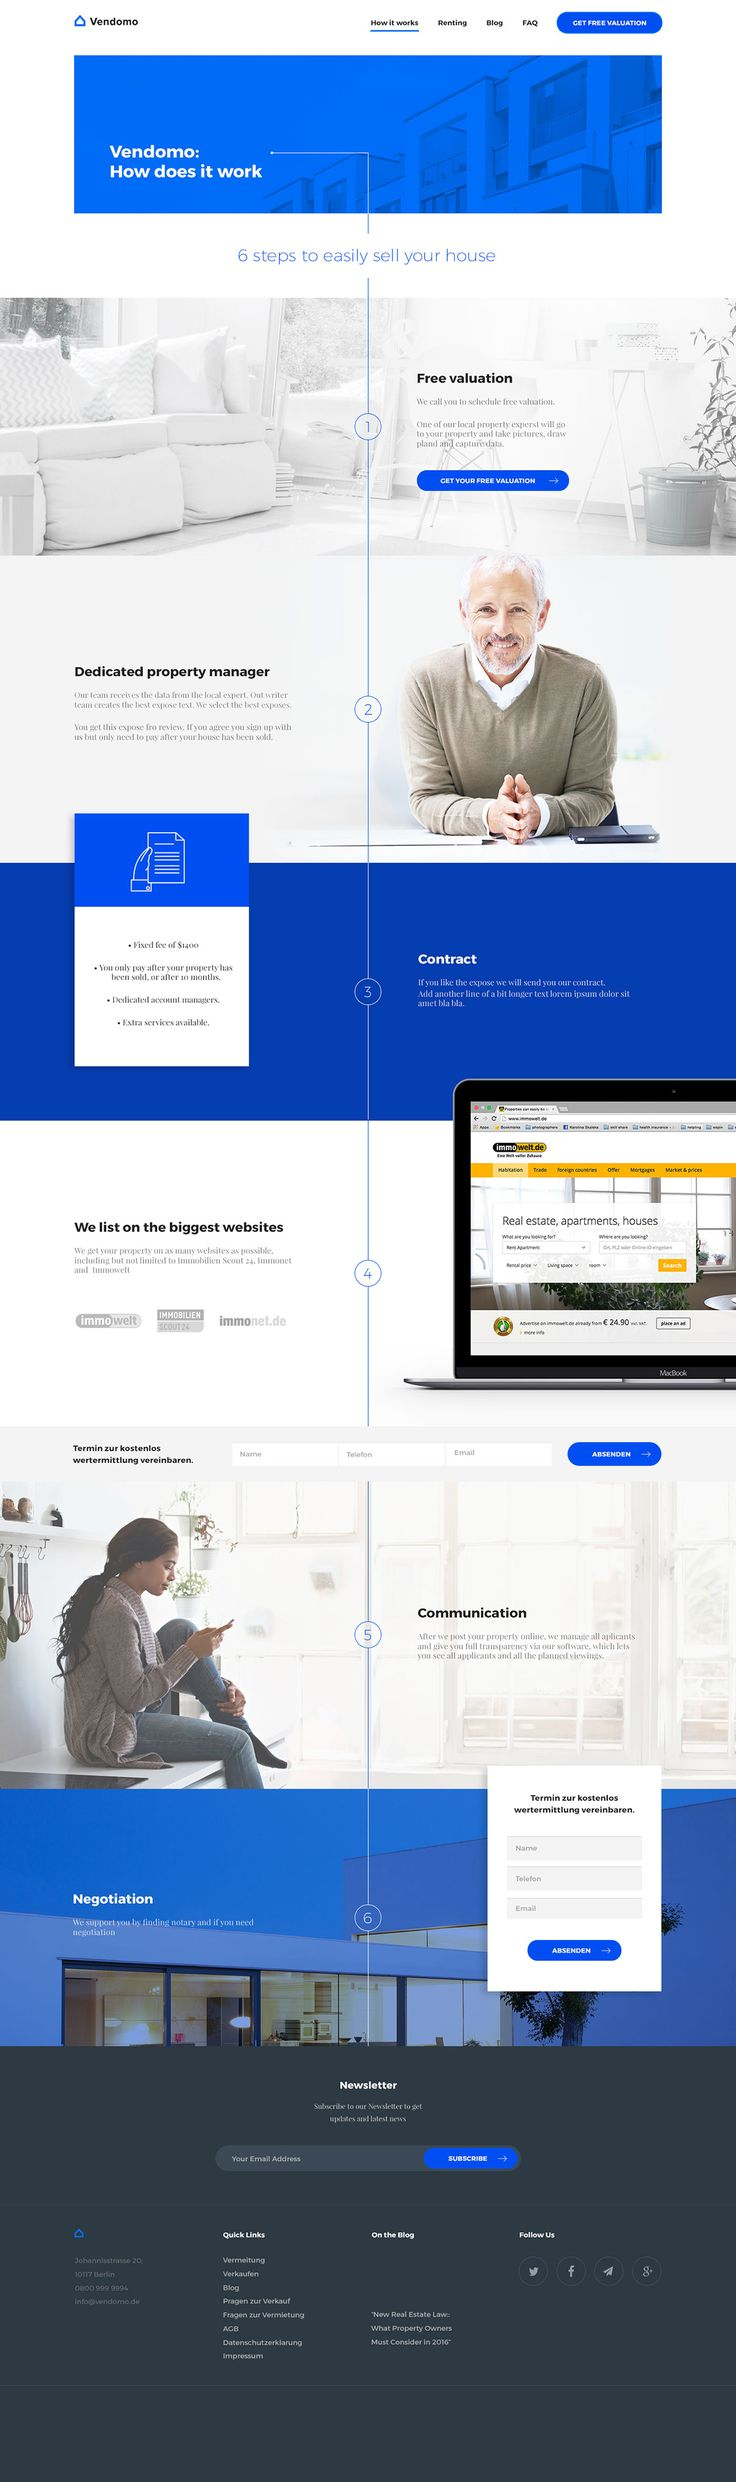 Vendomo - how it works page - real estate on Behance